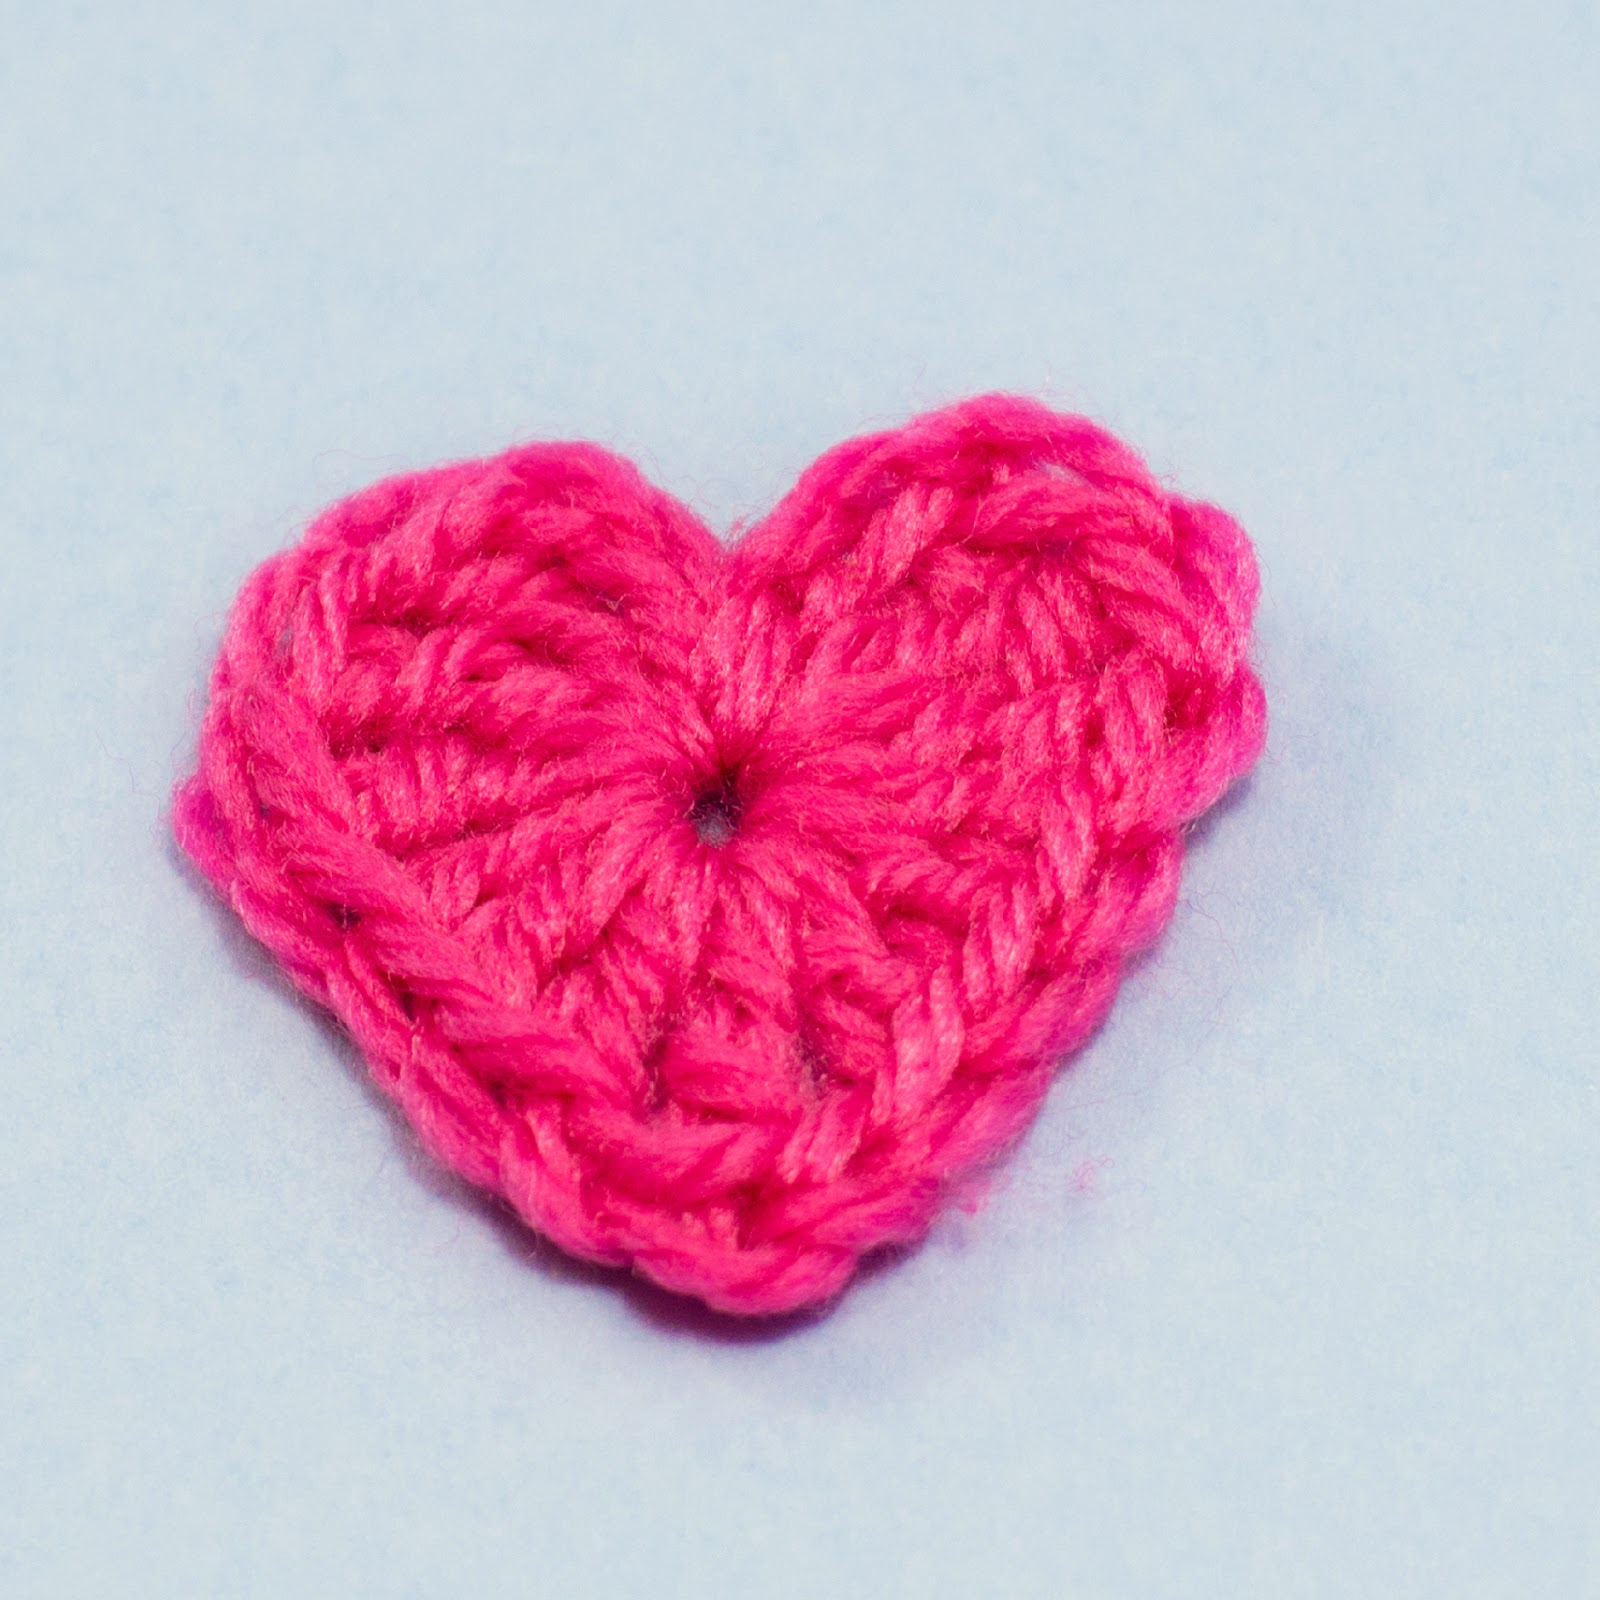 Crochet Me : Basic Small Heart - Media - Crochet Me